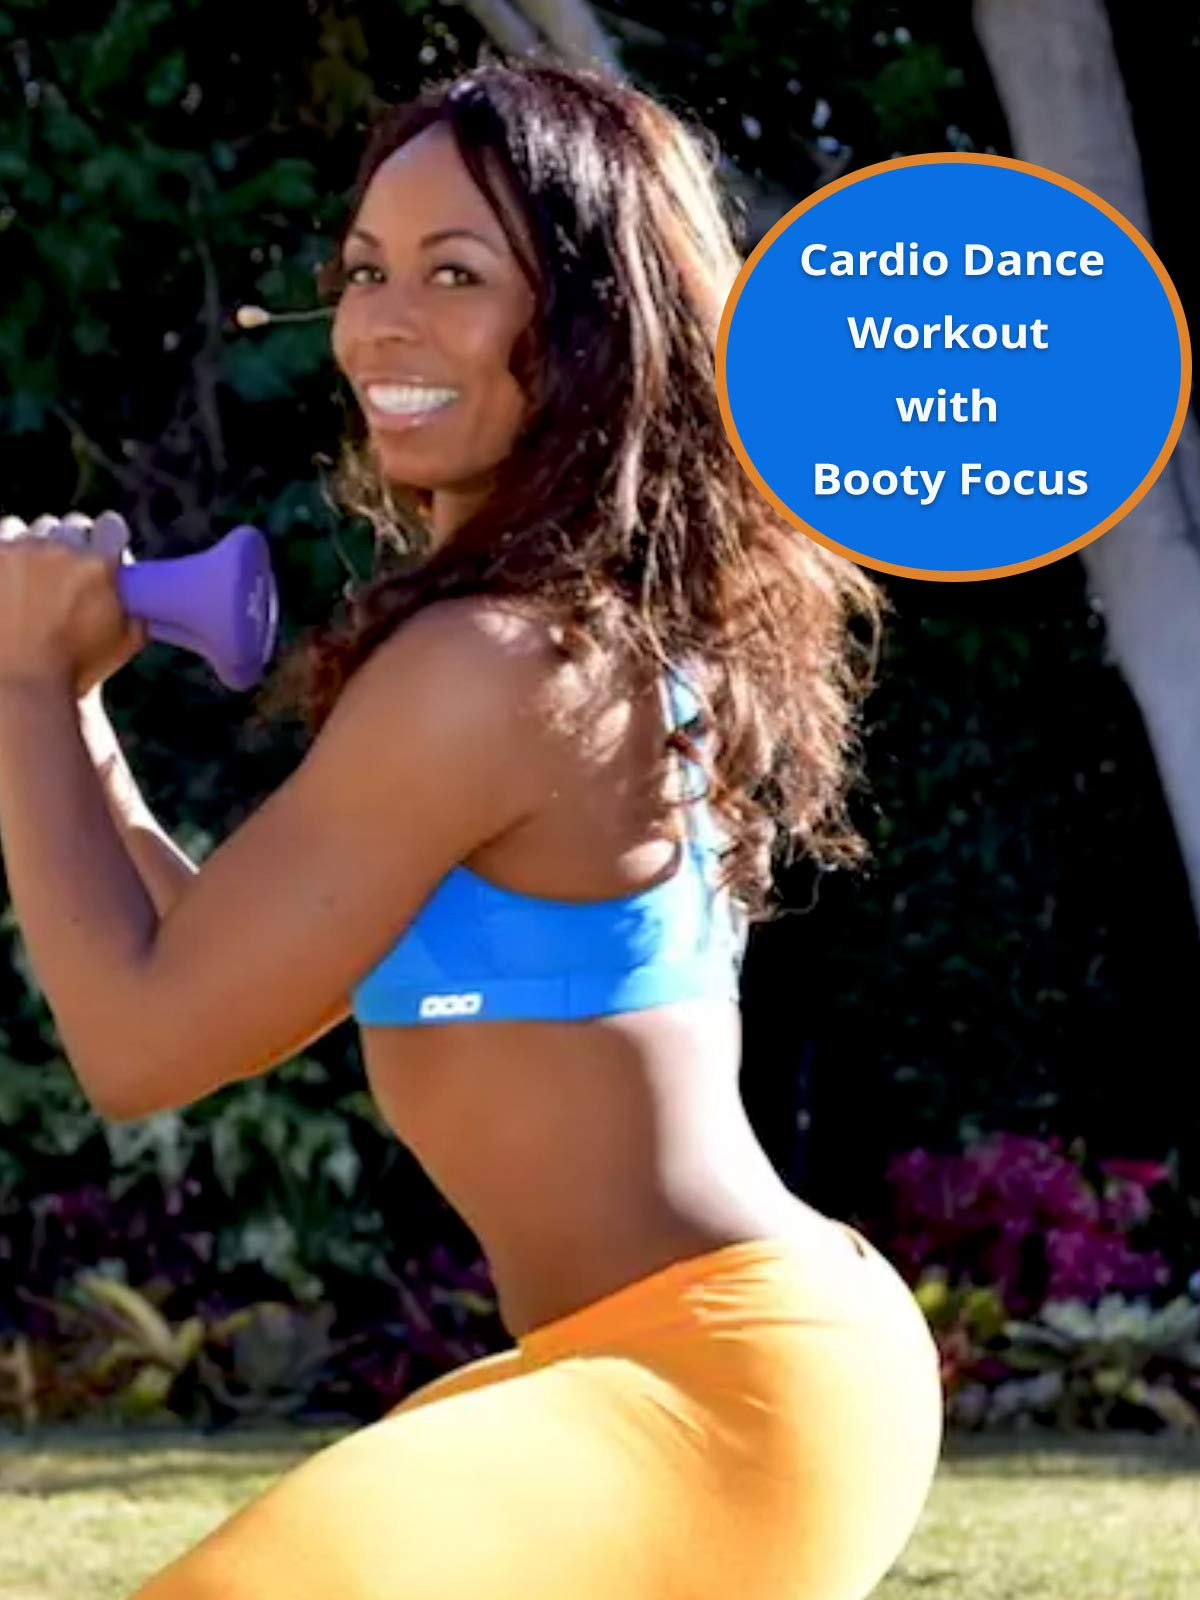 Cardio Dance Workout with Booty Focus